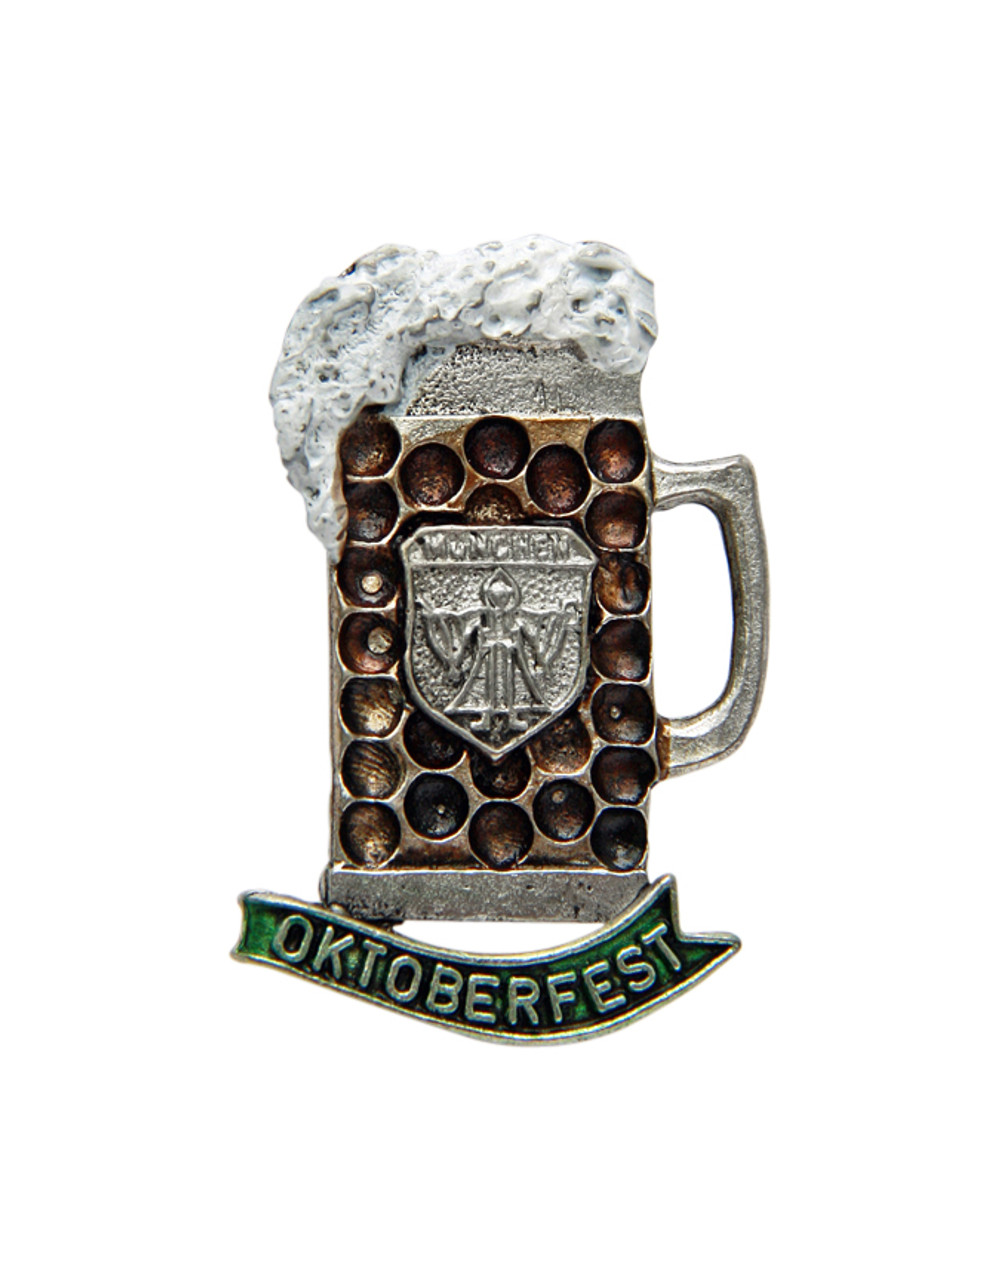 Oktoberfest Munich Frothing Dimpled Mug German Hat Pin